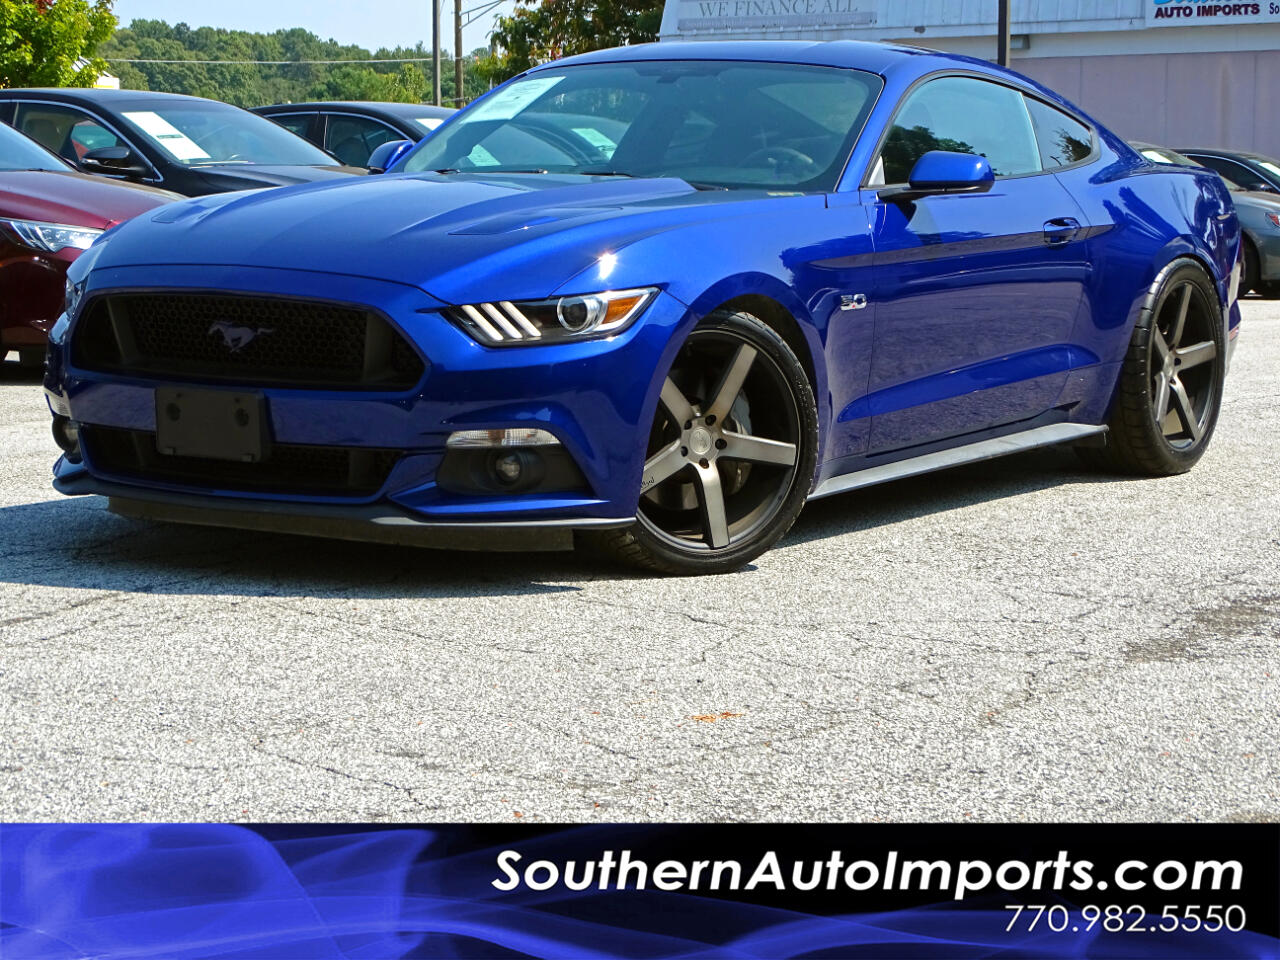 2015 Ford Mustang FASTABACK GT w/BACK UP CAMERA 1-OWNER